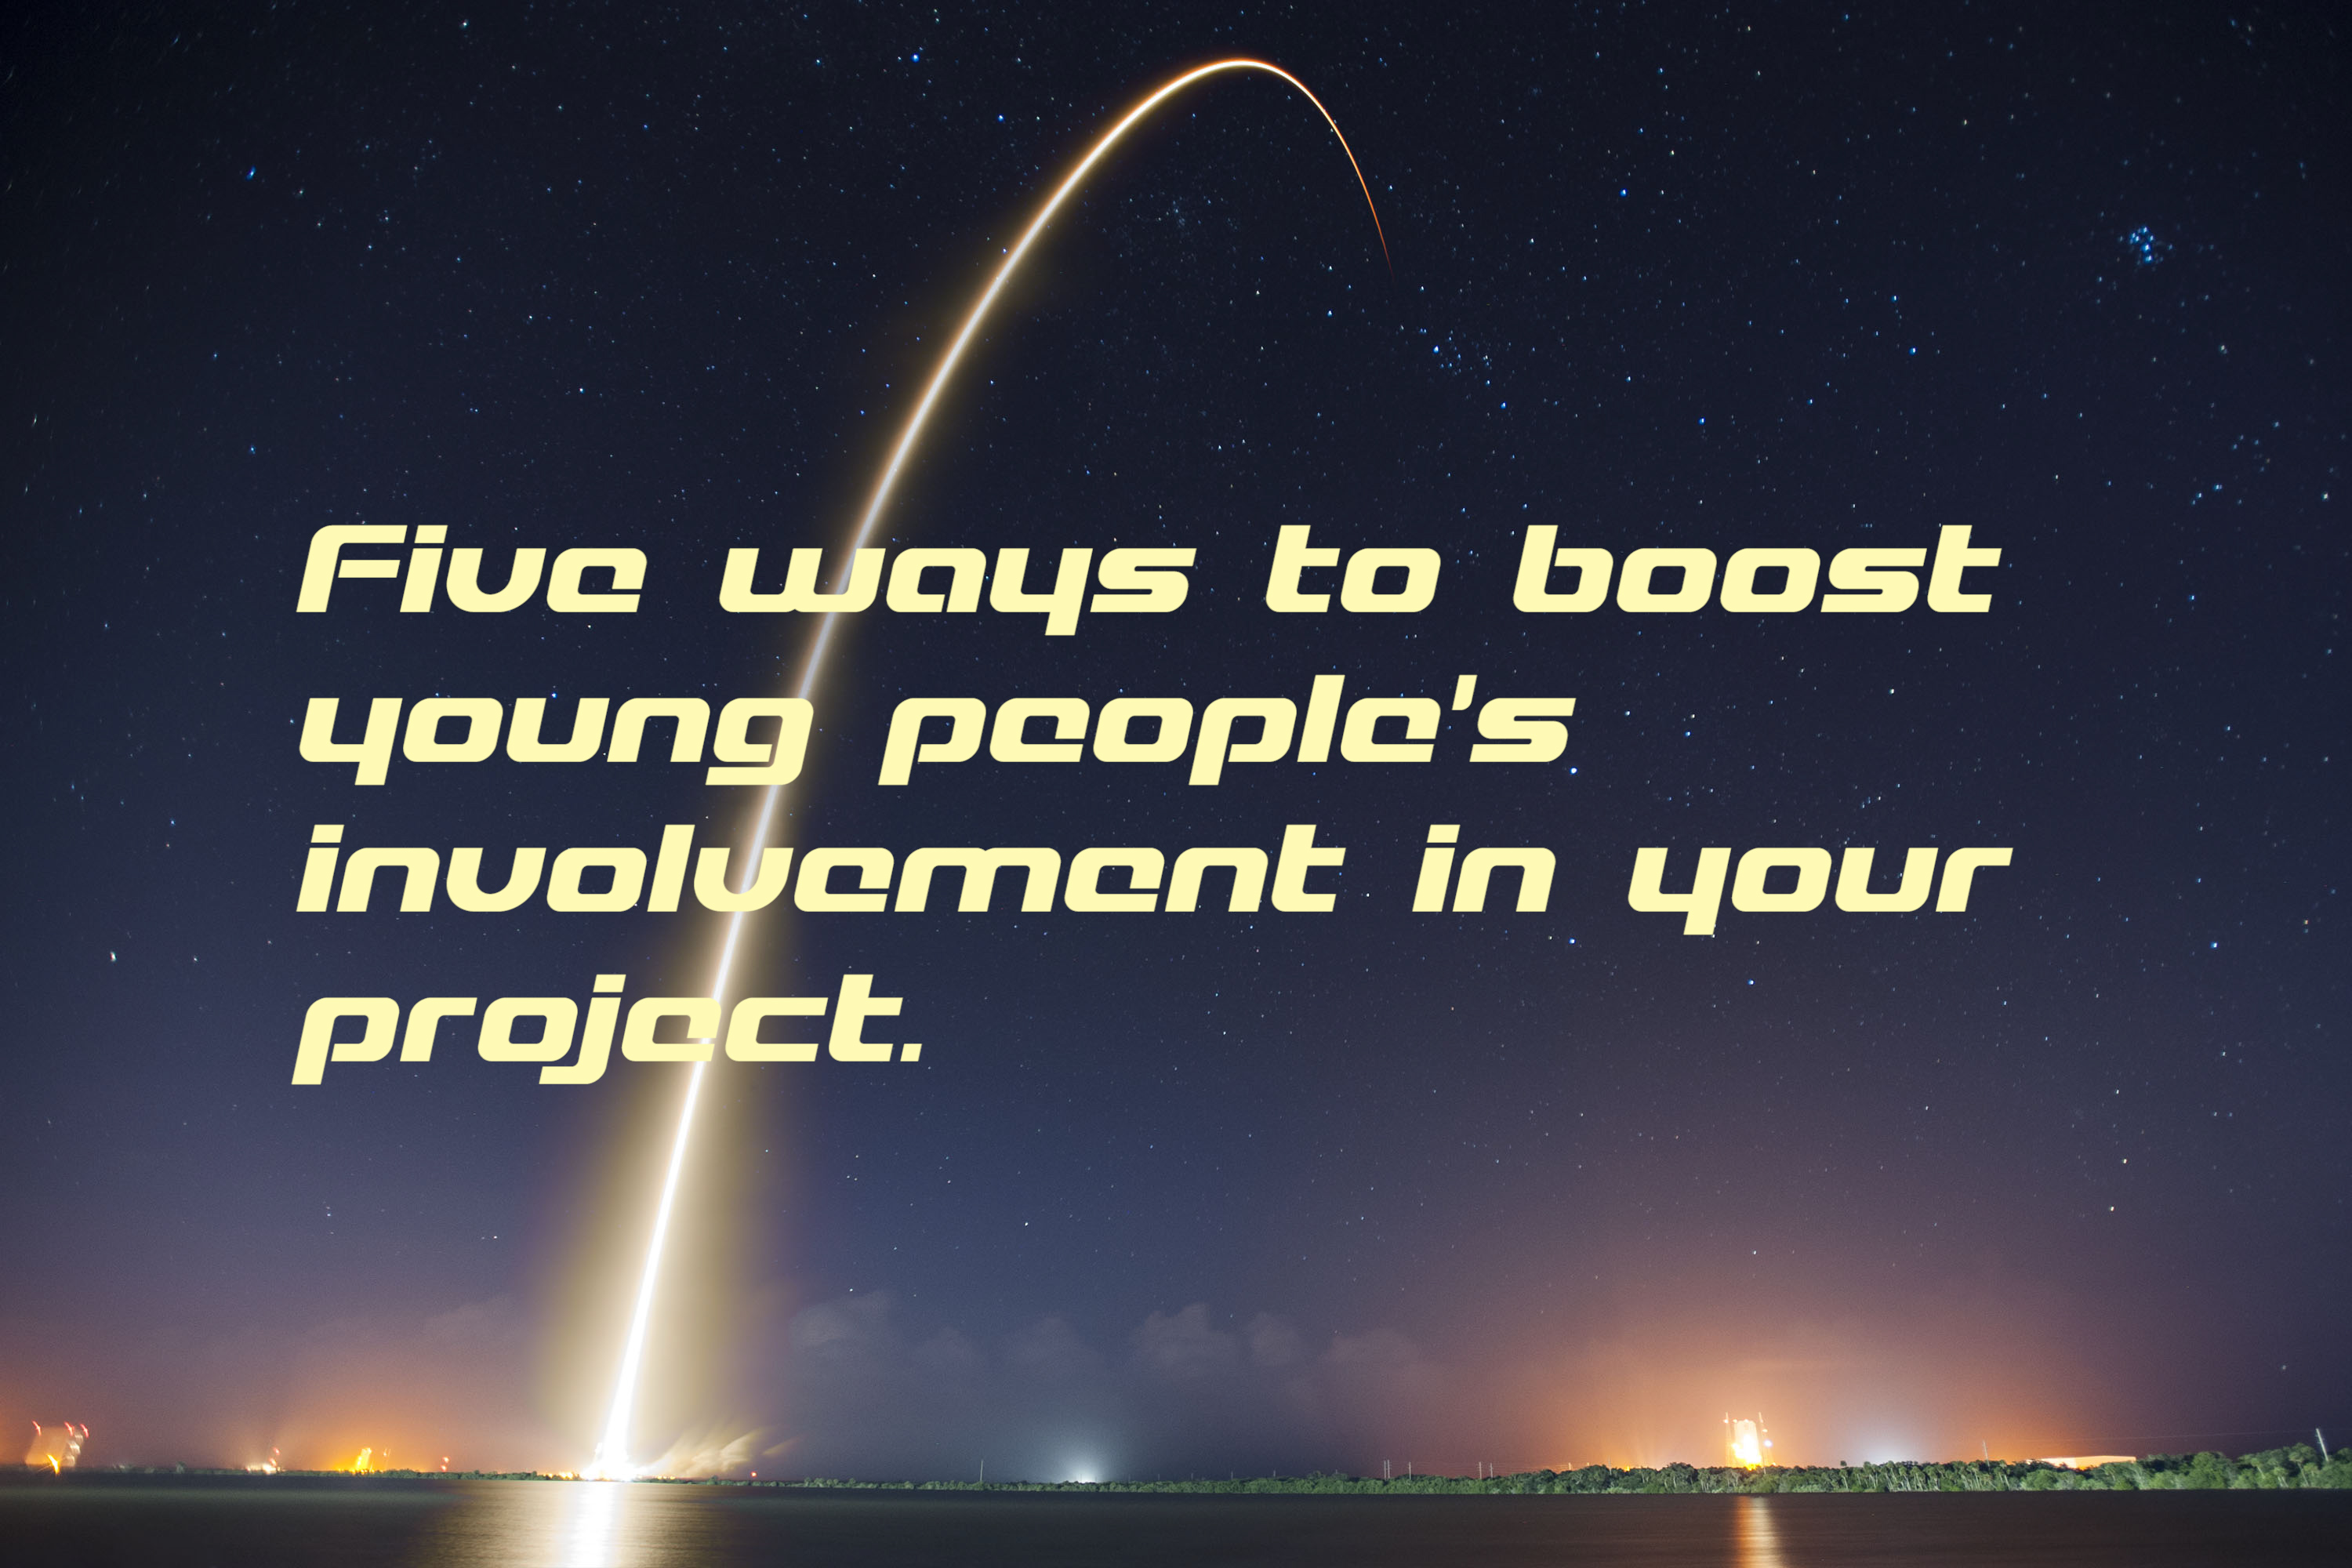 5 ways to boost young people's involvement in your project